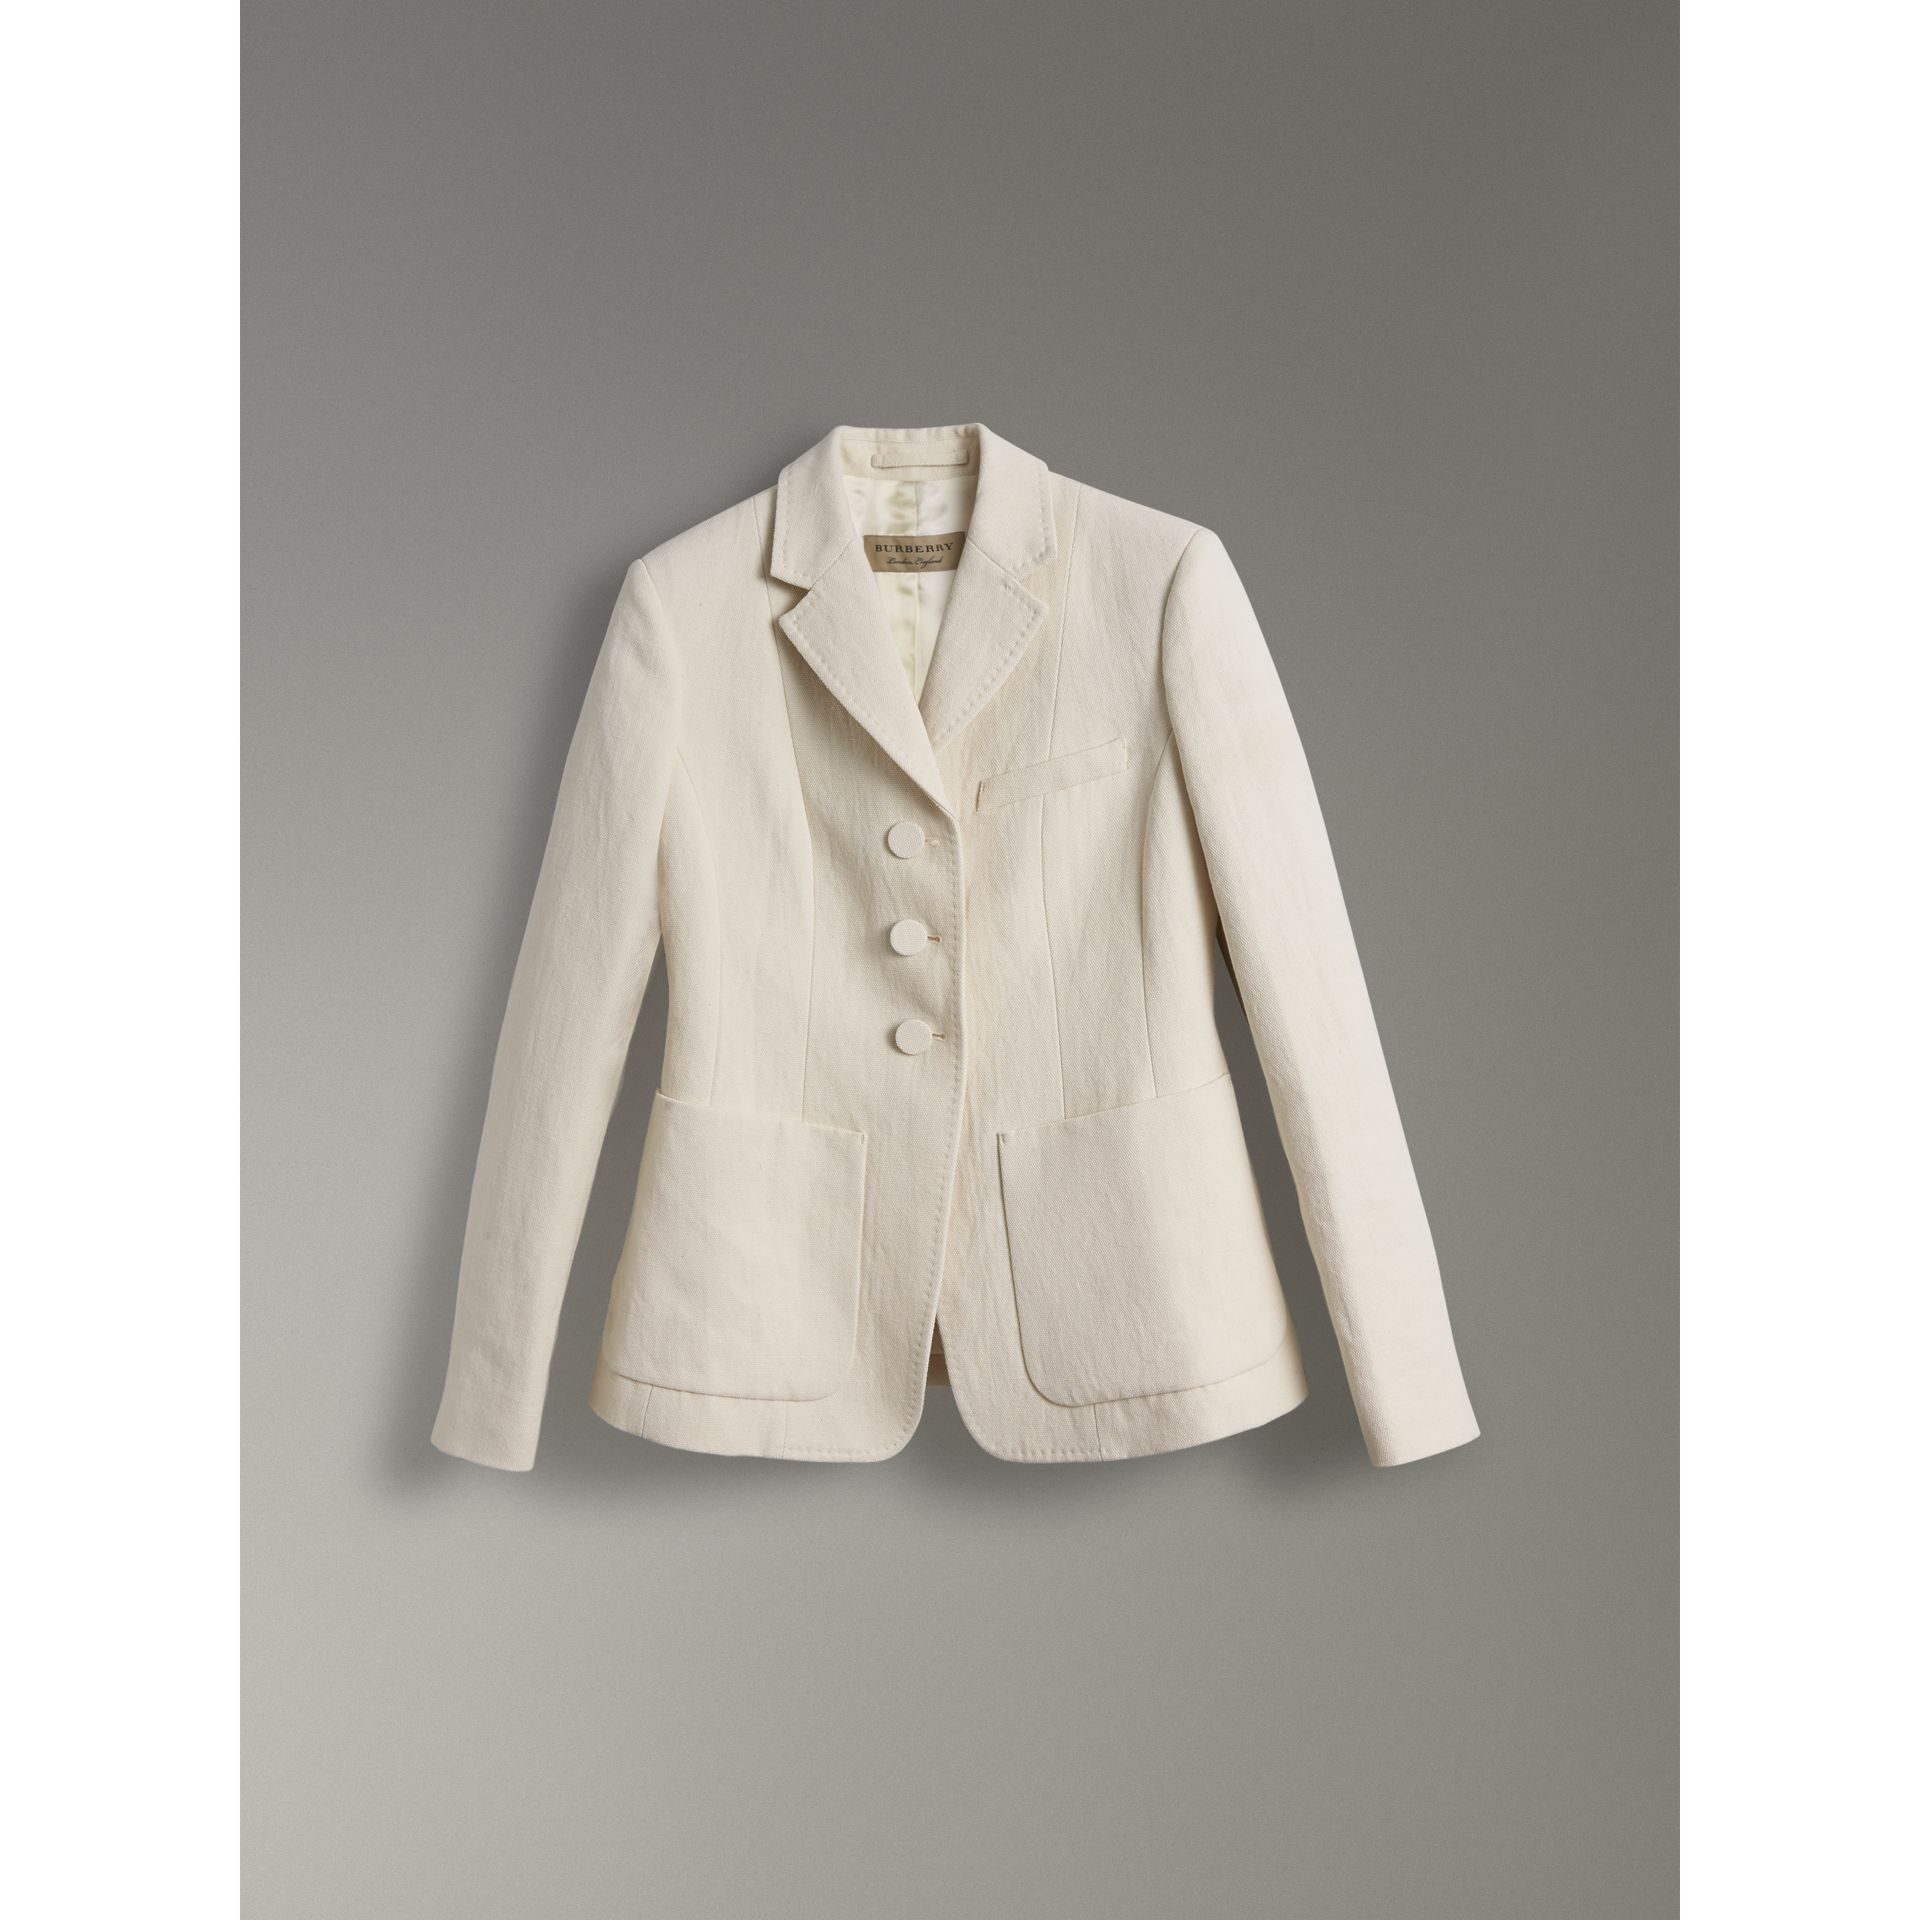 Cotton Linen Fitted Jacket in Off White - Women | Burberry Singapore - gallery image 3